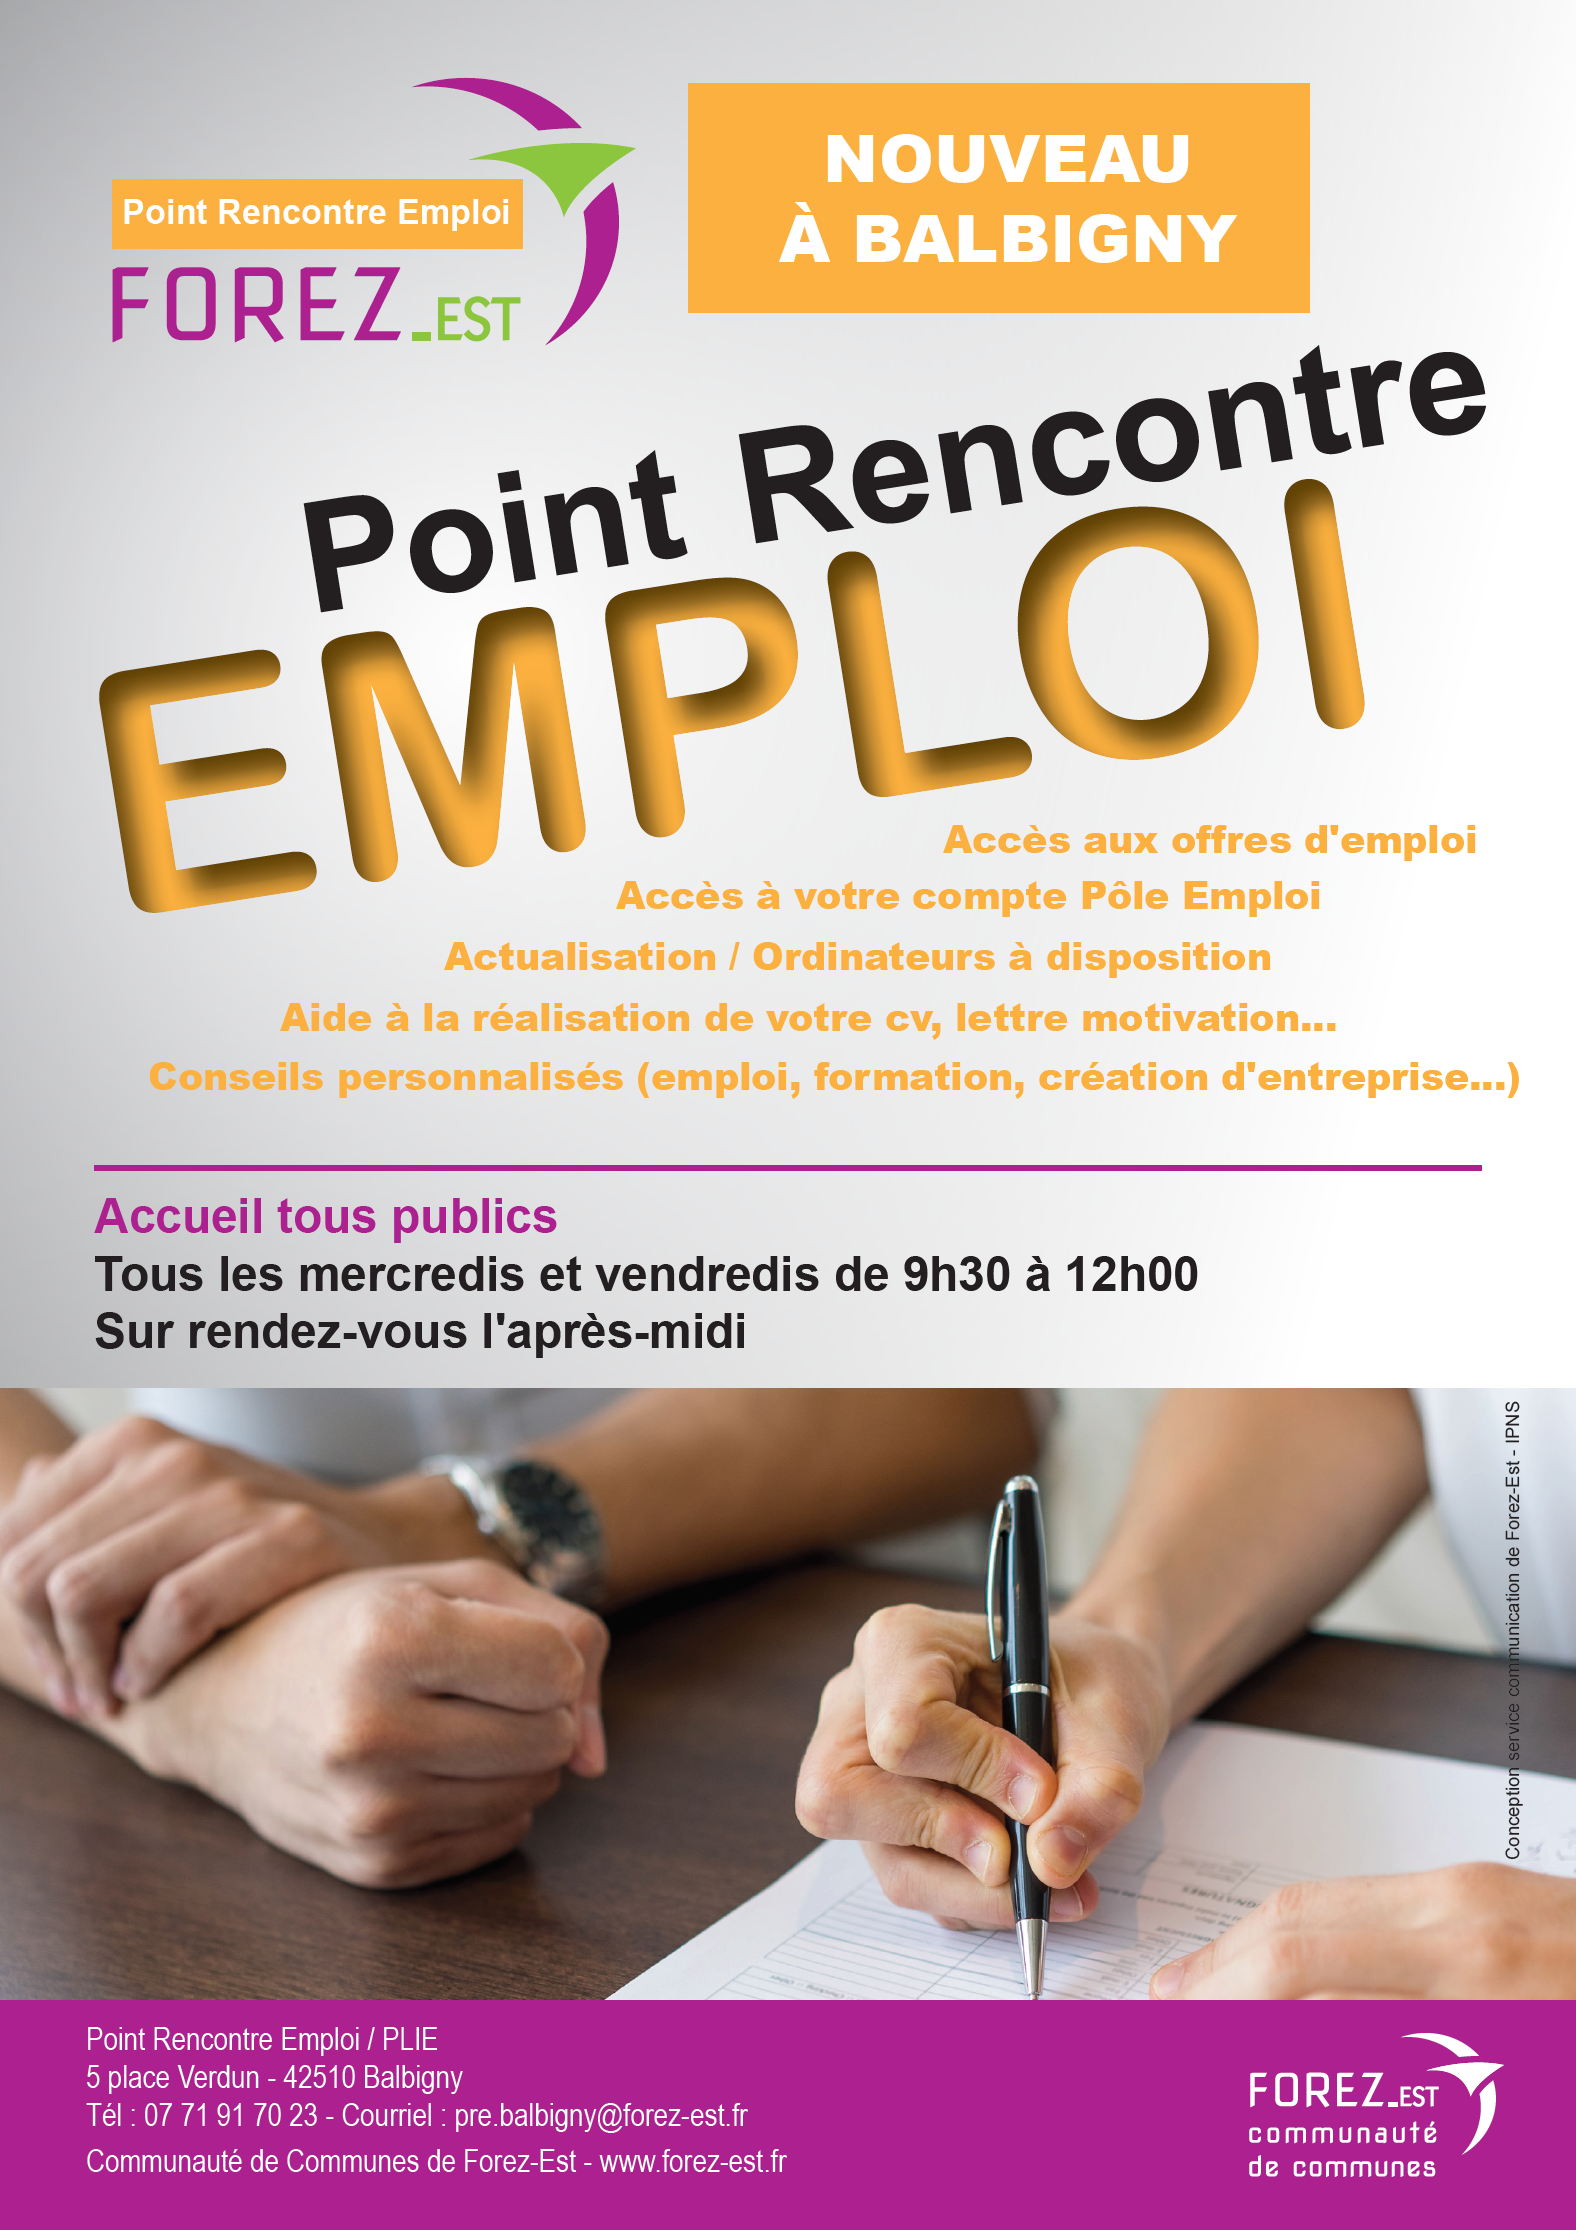 Point Rencontre Emploi